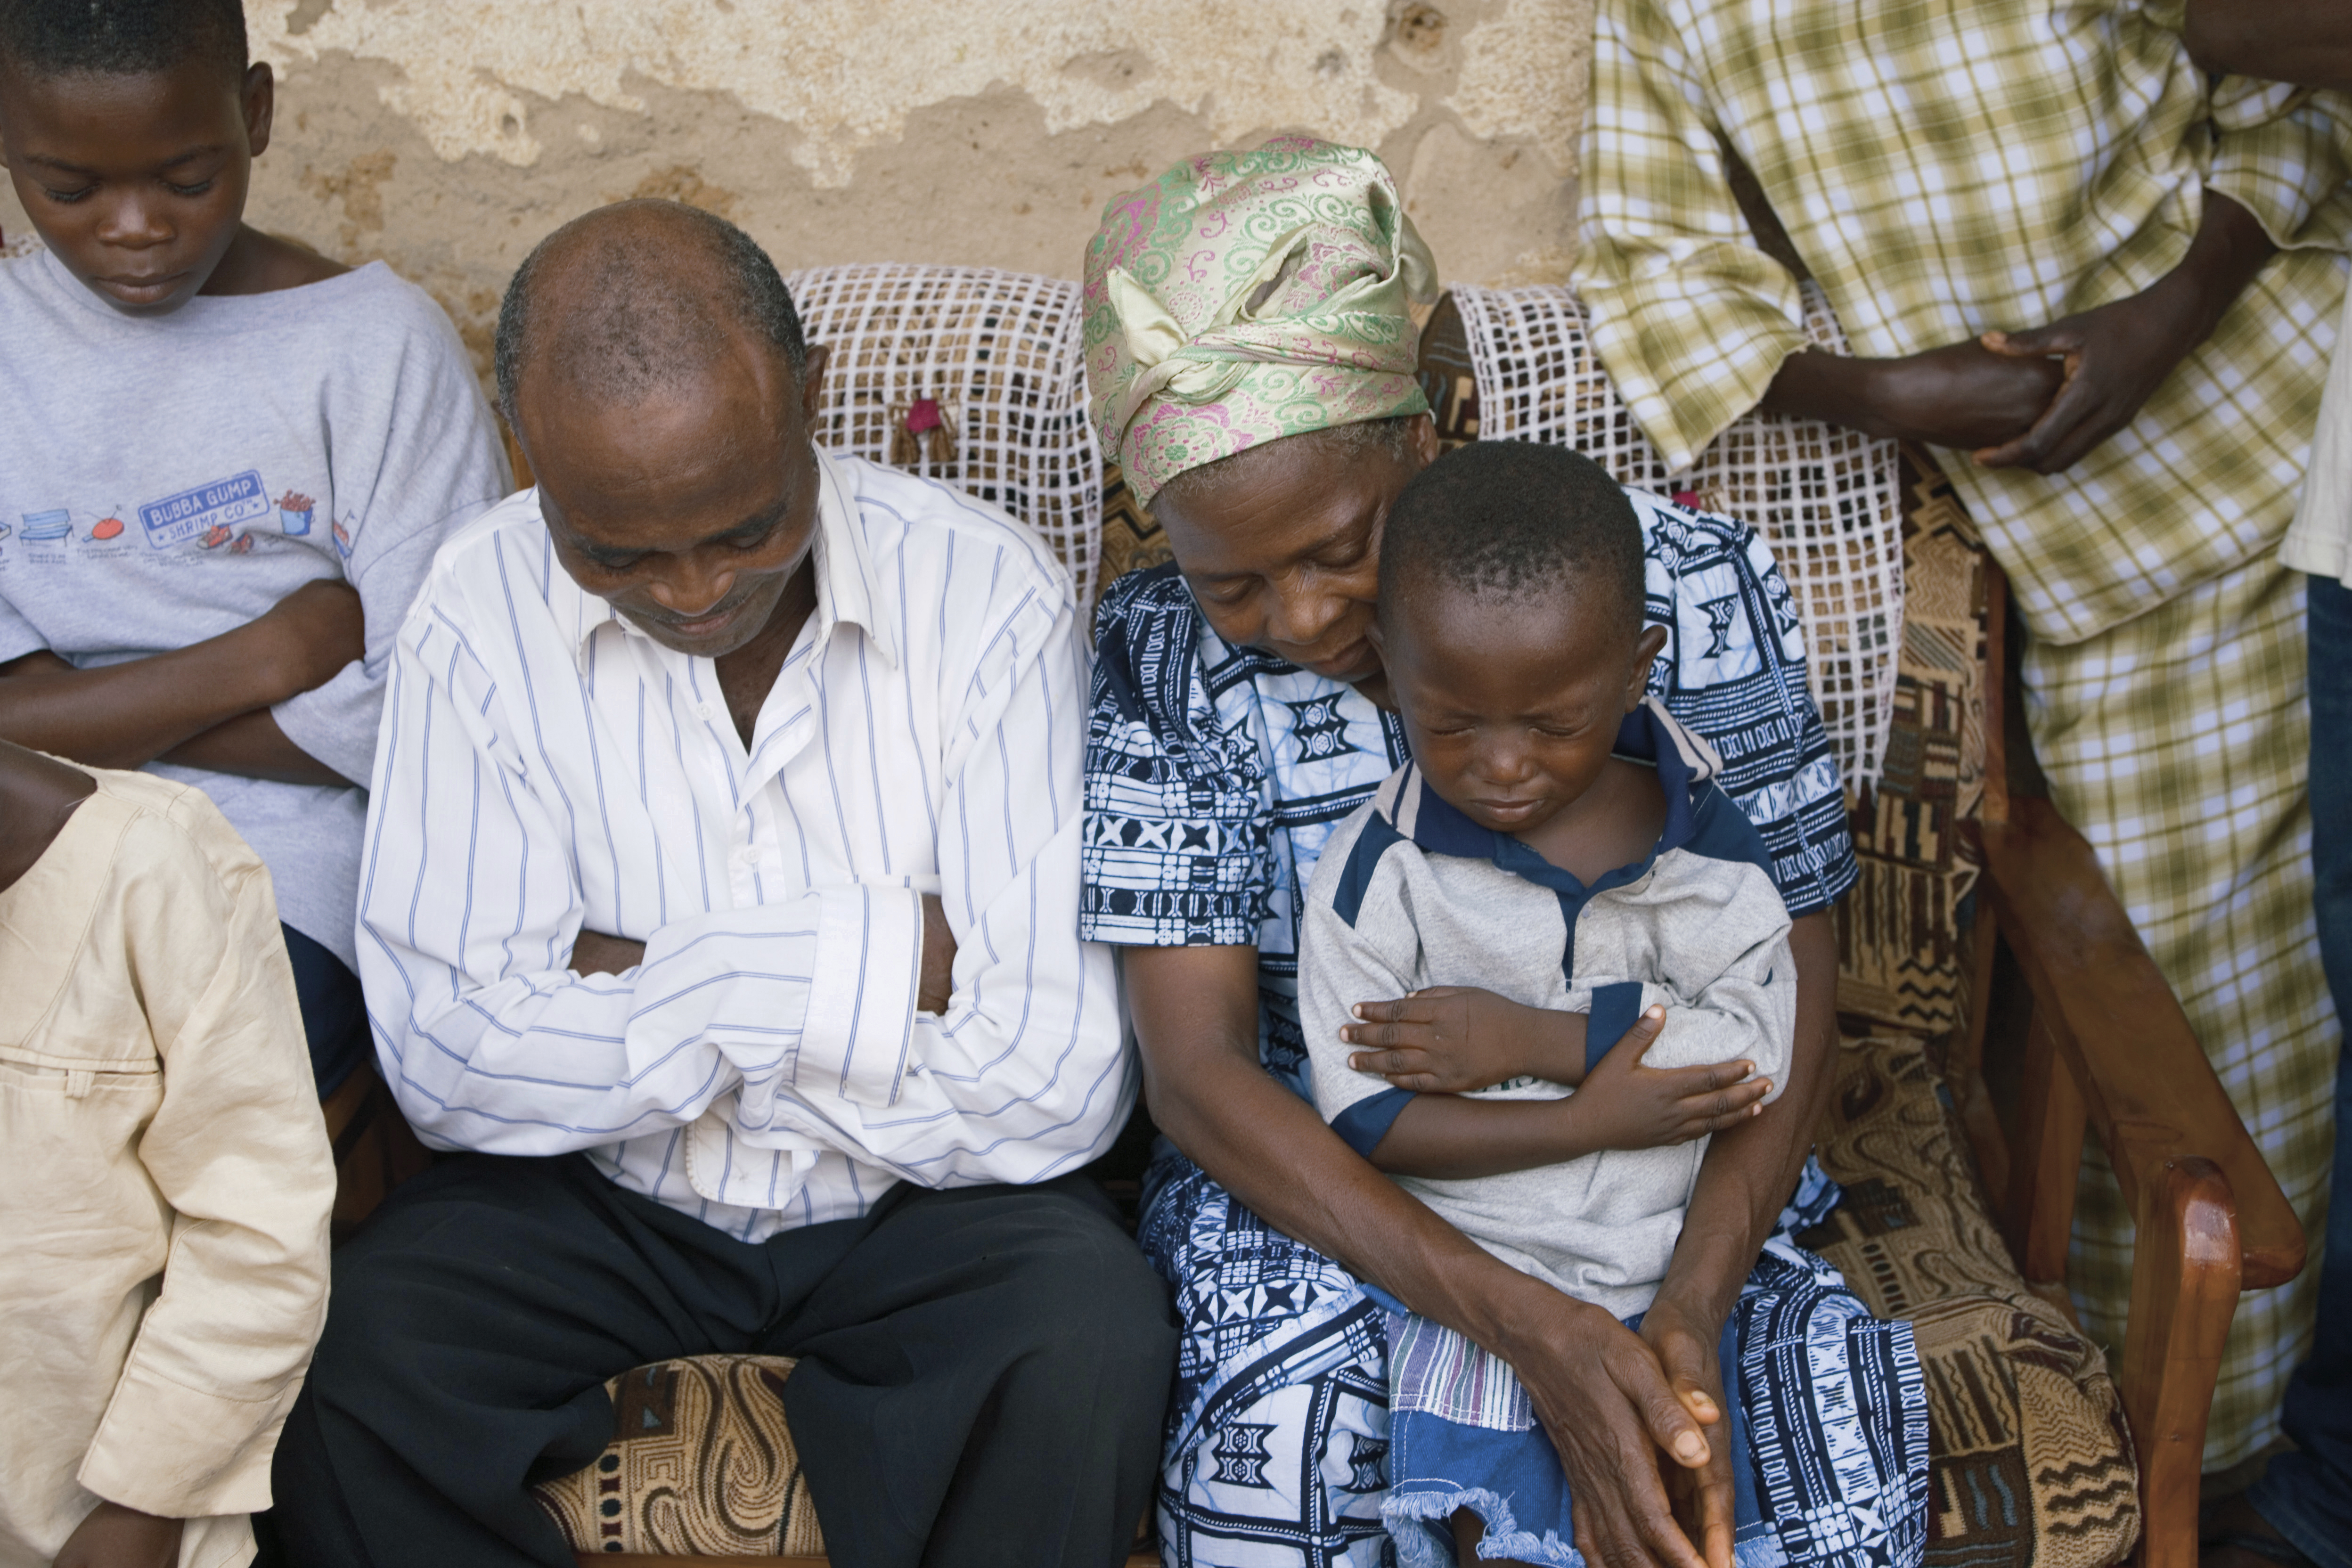 A family in Africa sitting and praying together.